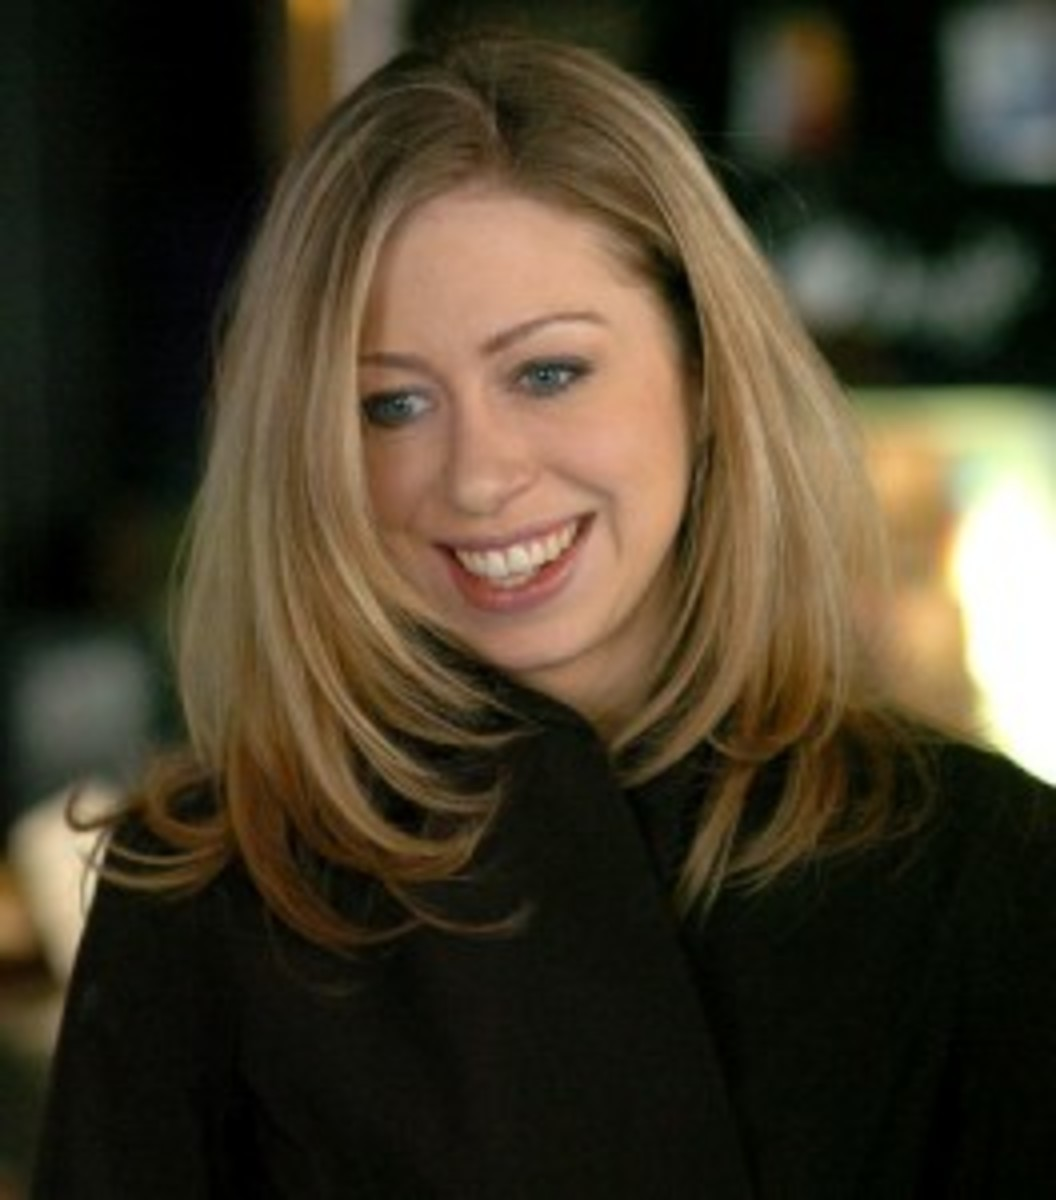 Chelsea Clinton, daughter of former President Bill Clinton and former Secretary of State Hilary Rodham Clinton has joined the ranks of those living gluten free. Her wedding cake was gluten free as well as the wedding food.